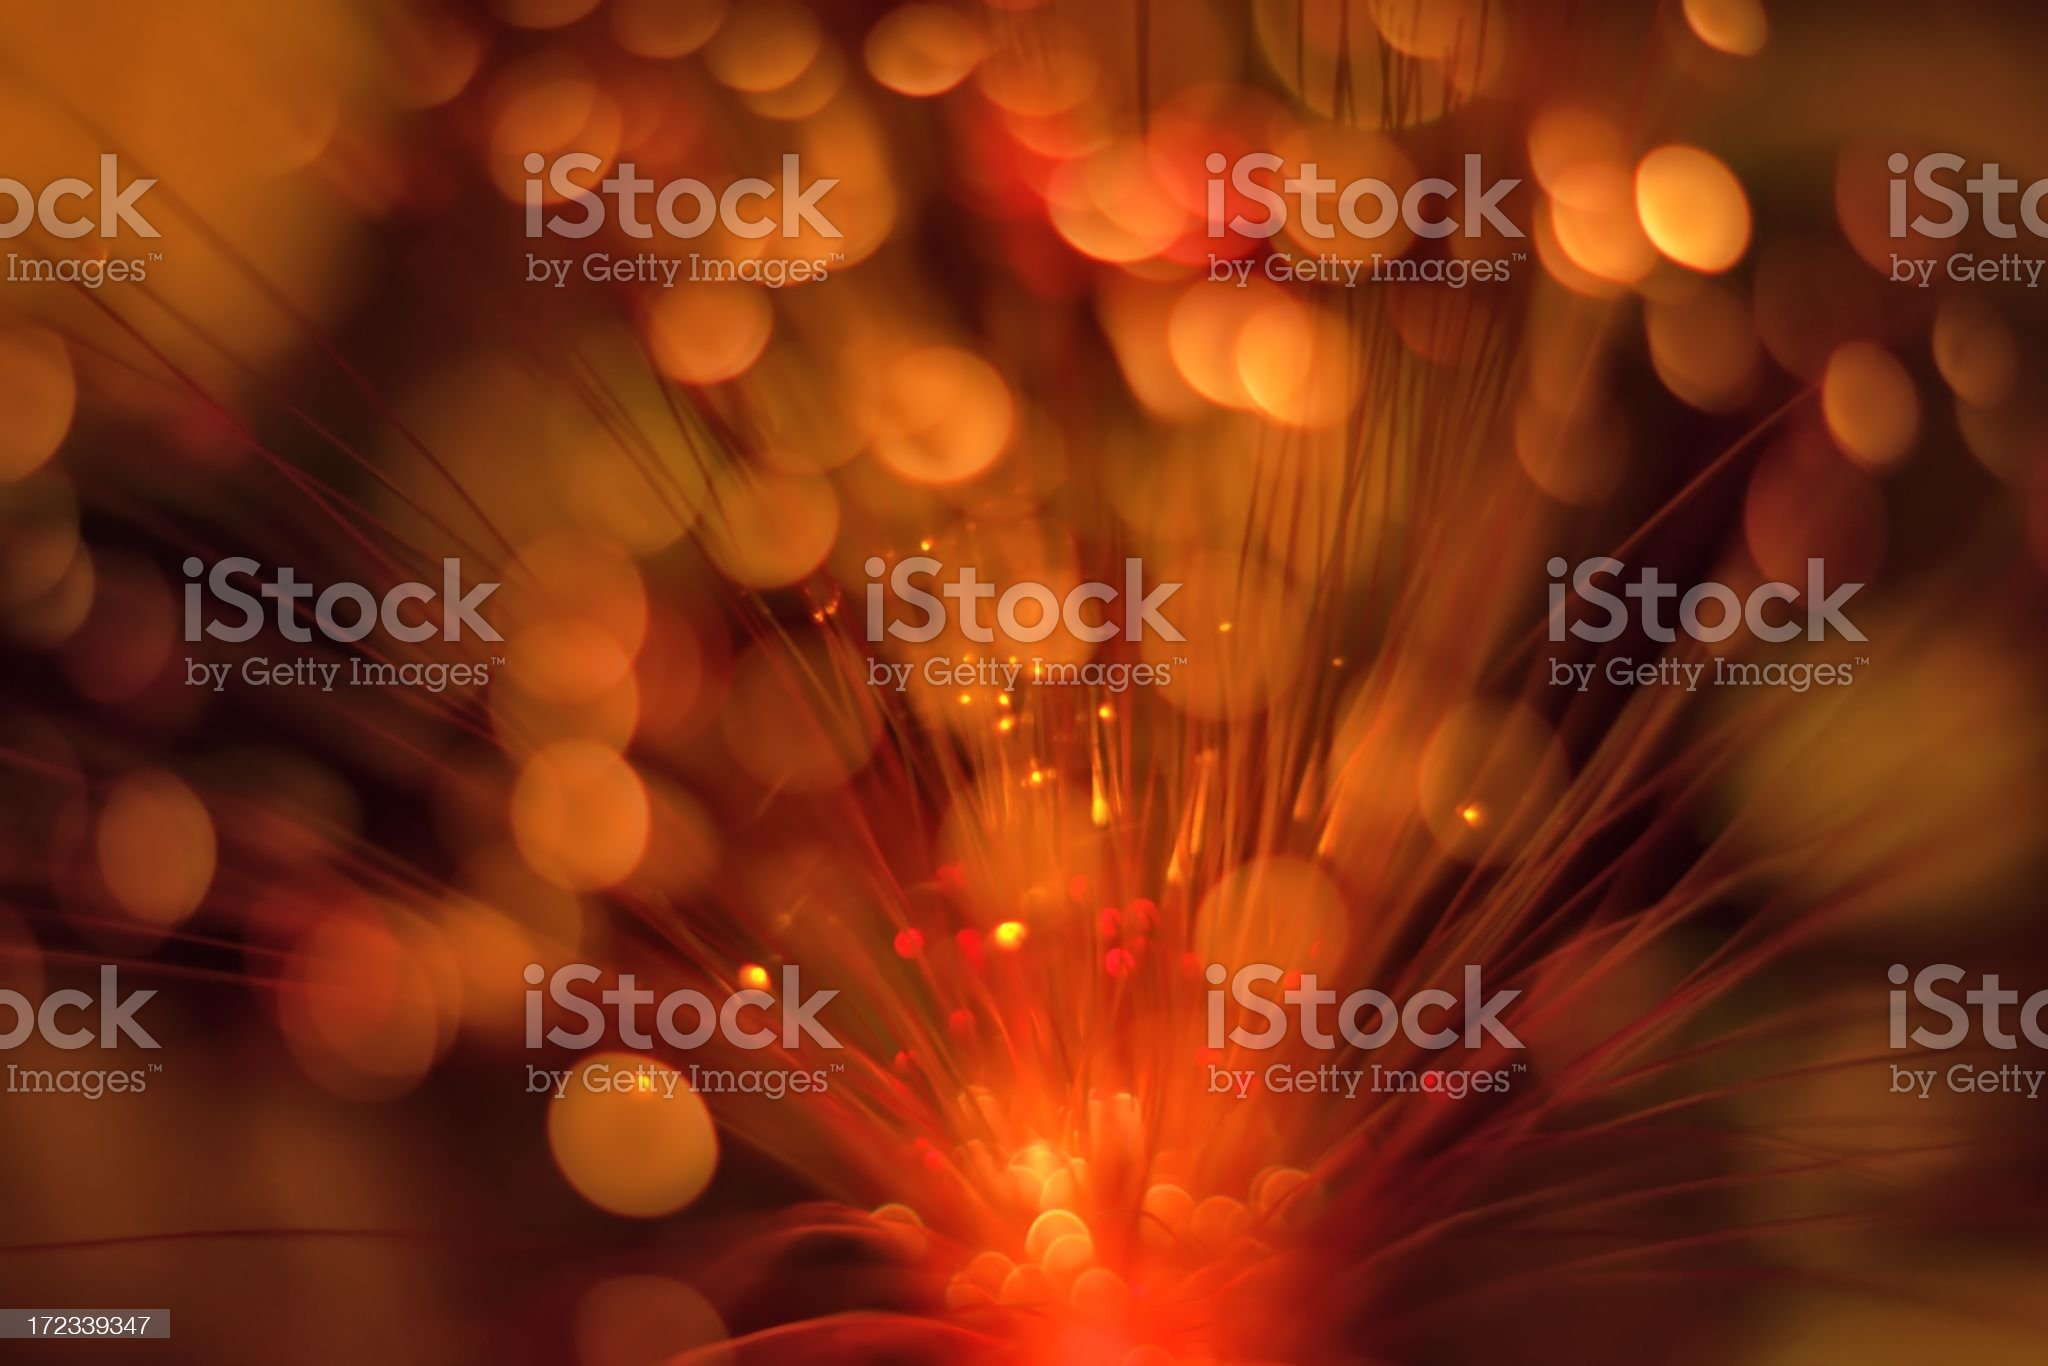 Light, blurred sparkles as background royalty-free stock photo